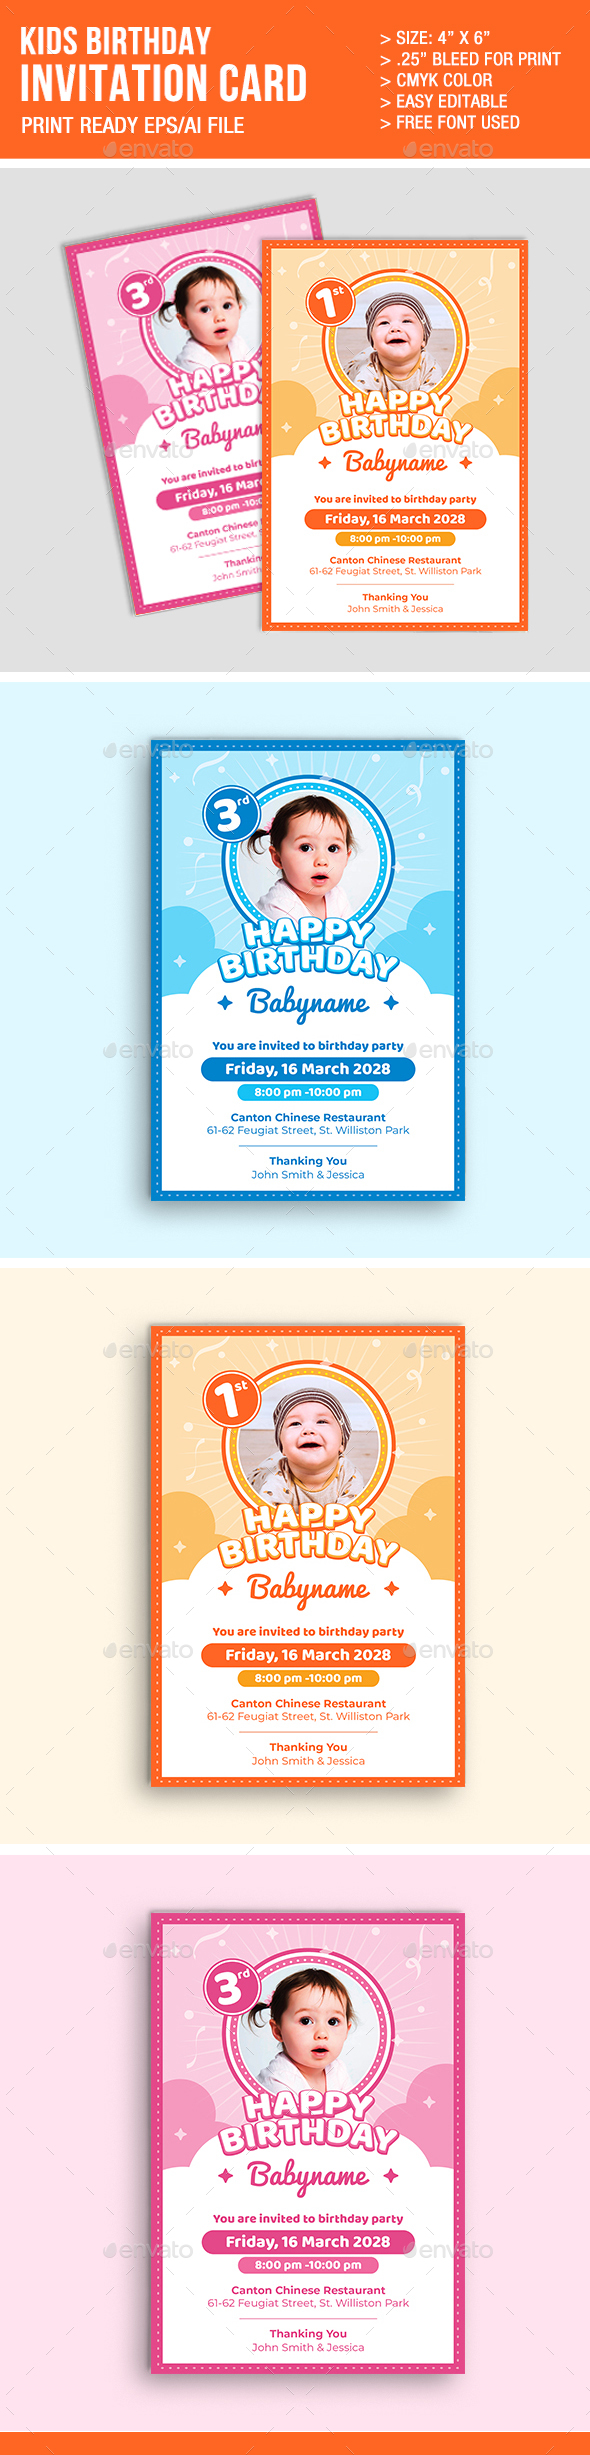 kids birthday invitation graphics